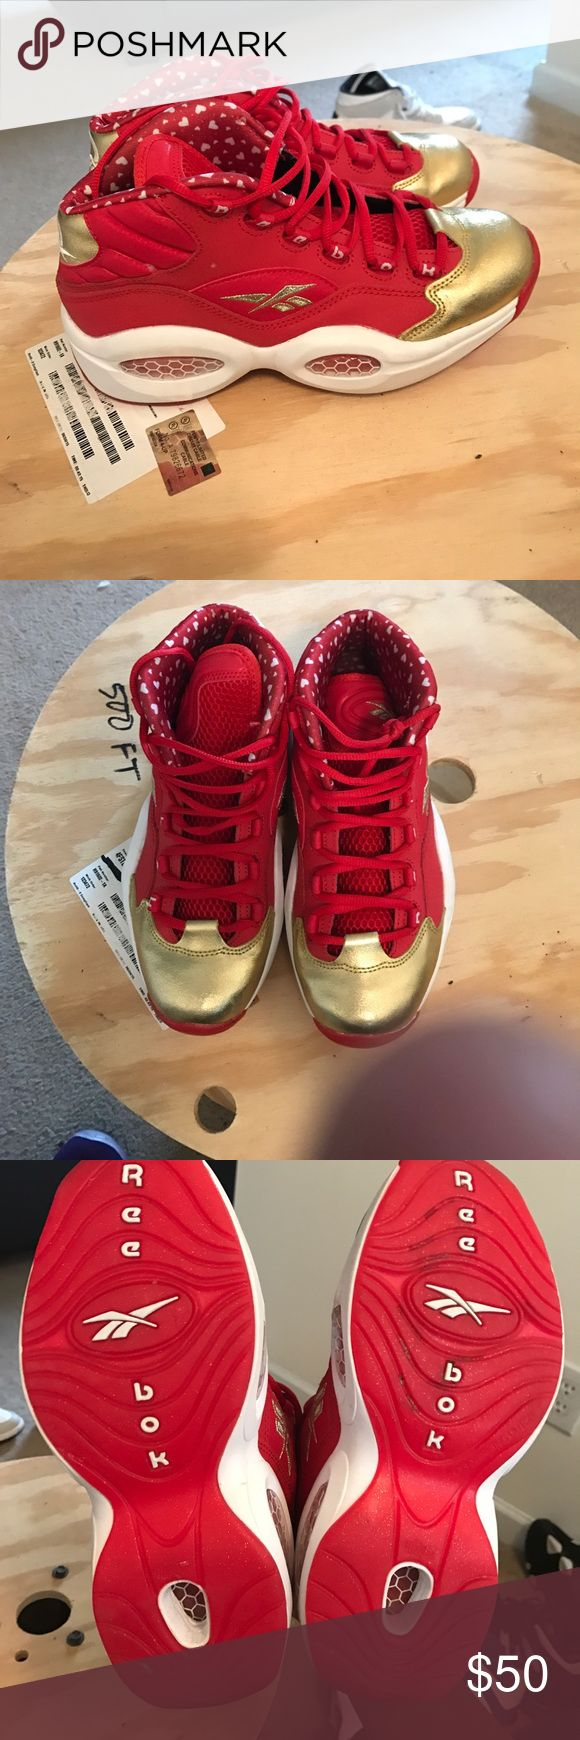 Allen iverson reebok questions valentinesAddition Very clean shoe no flaws look fairly new great price Reebok Shoes Sneakers